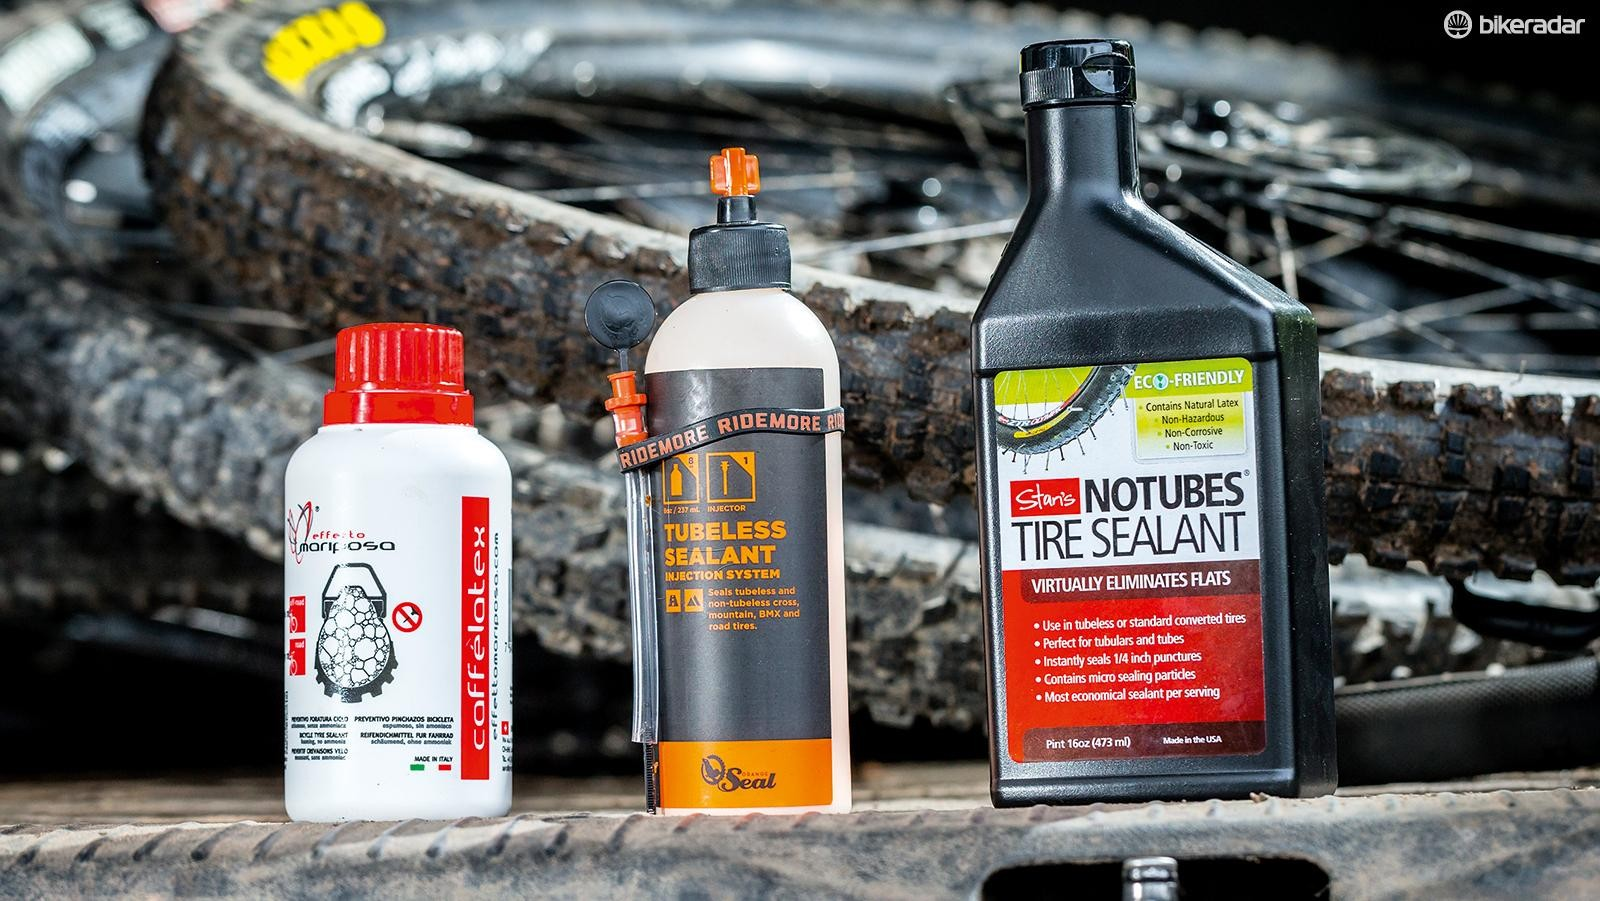 Going tubeless reduces the risk of punctures and increases control